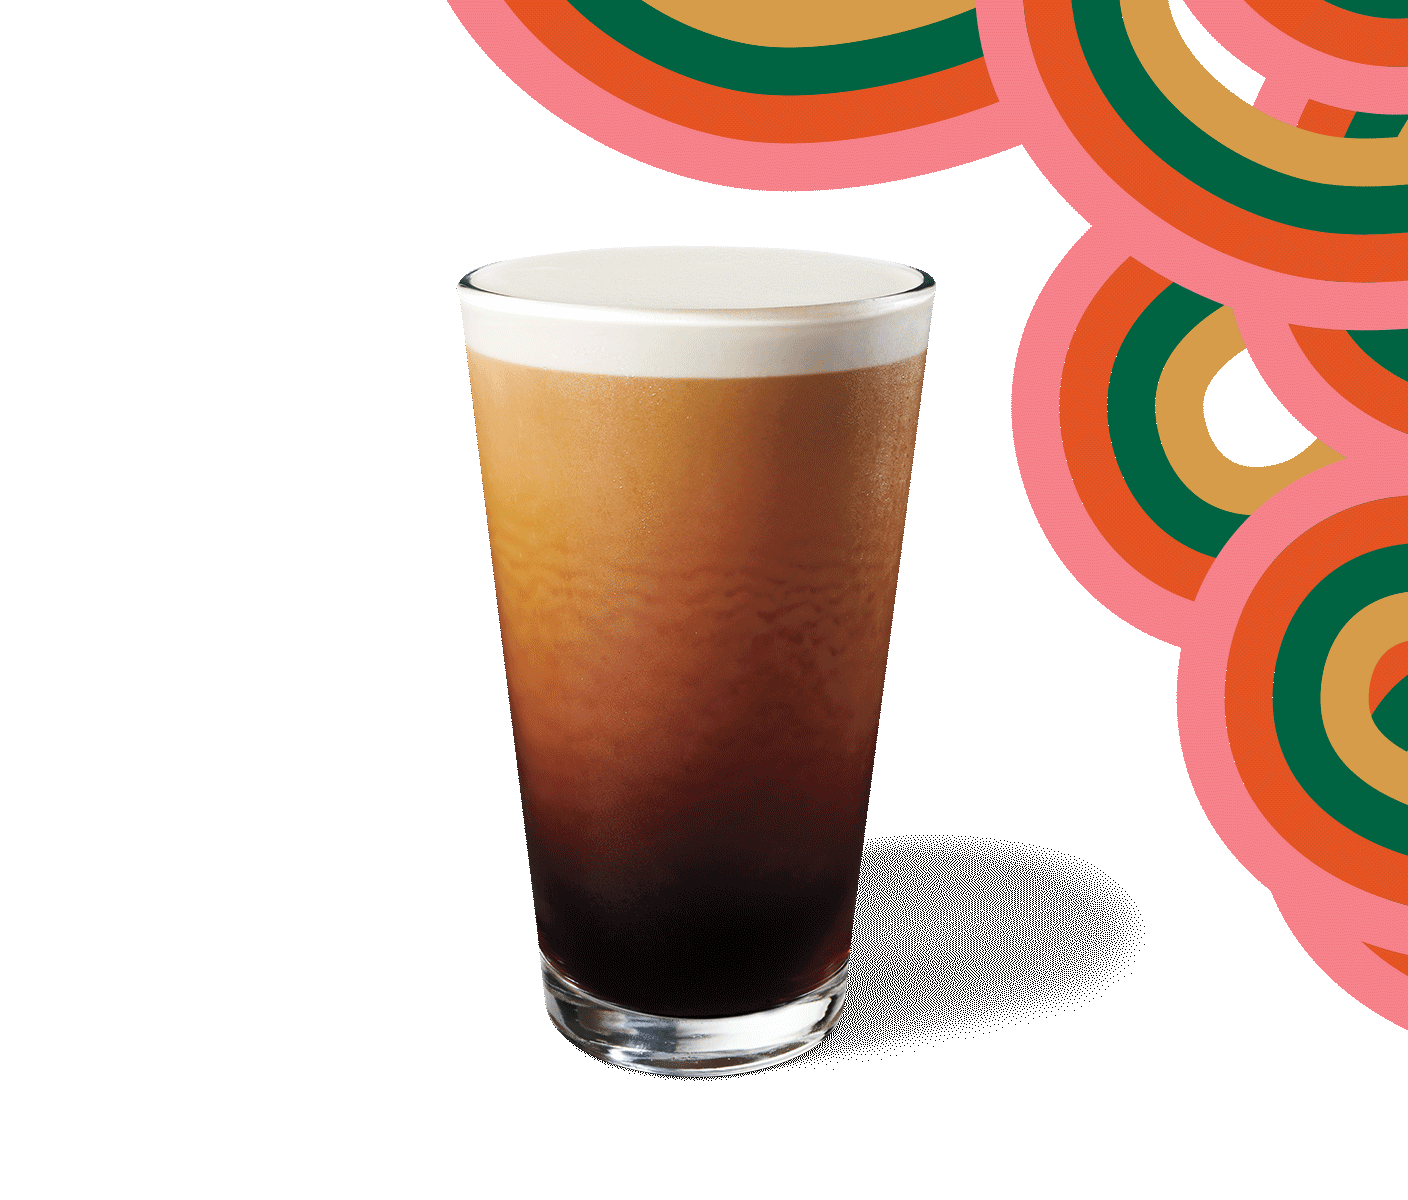 A Nitro Cold Brew sits atop a beige-colored background surrounded by graphic swirls.